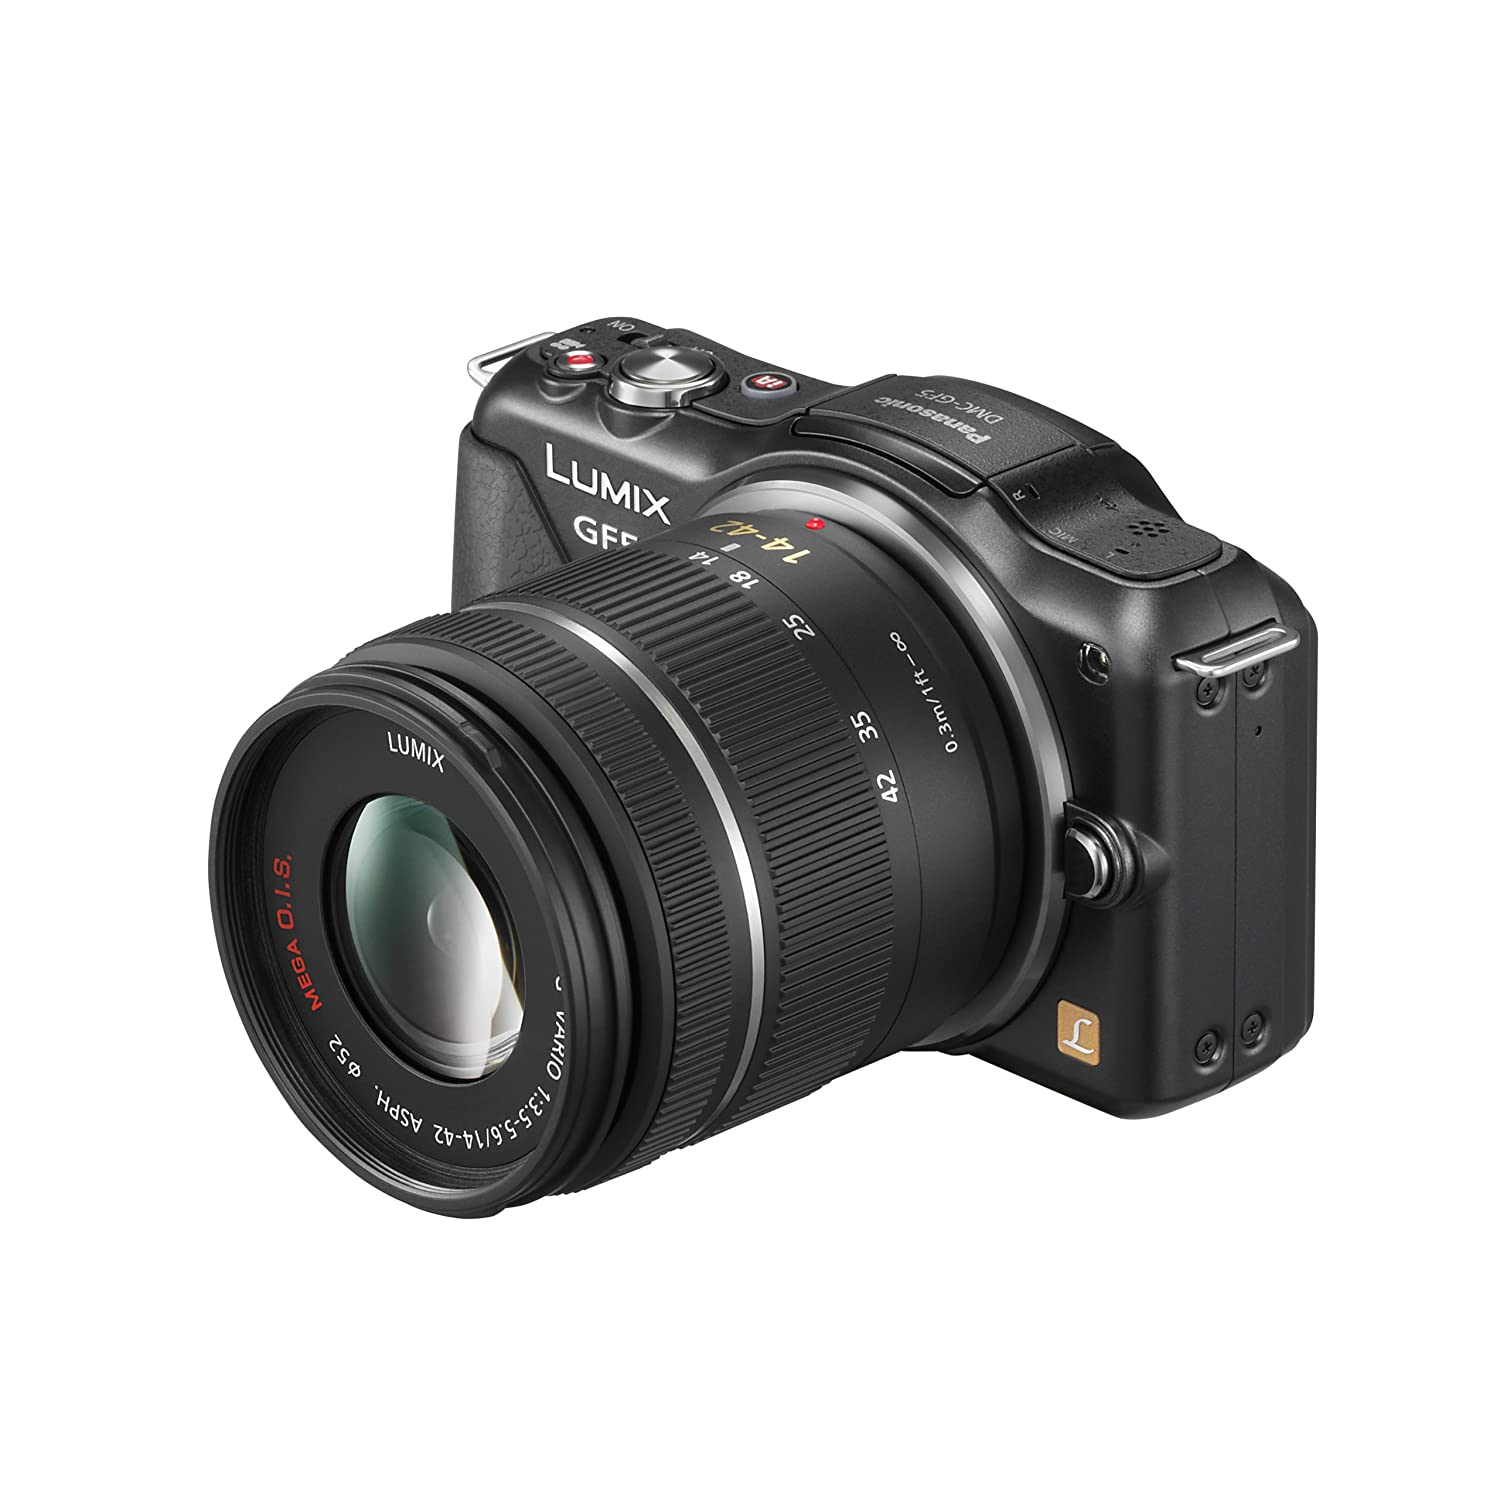 Panasonic DMC-GF5KK 12 MP Compact System Camera with 3-Inch Touch Screen and 14-42 Zoom Lens ($349.99)